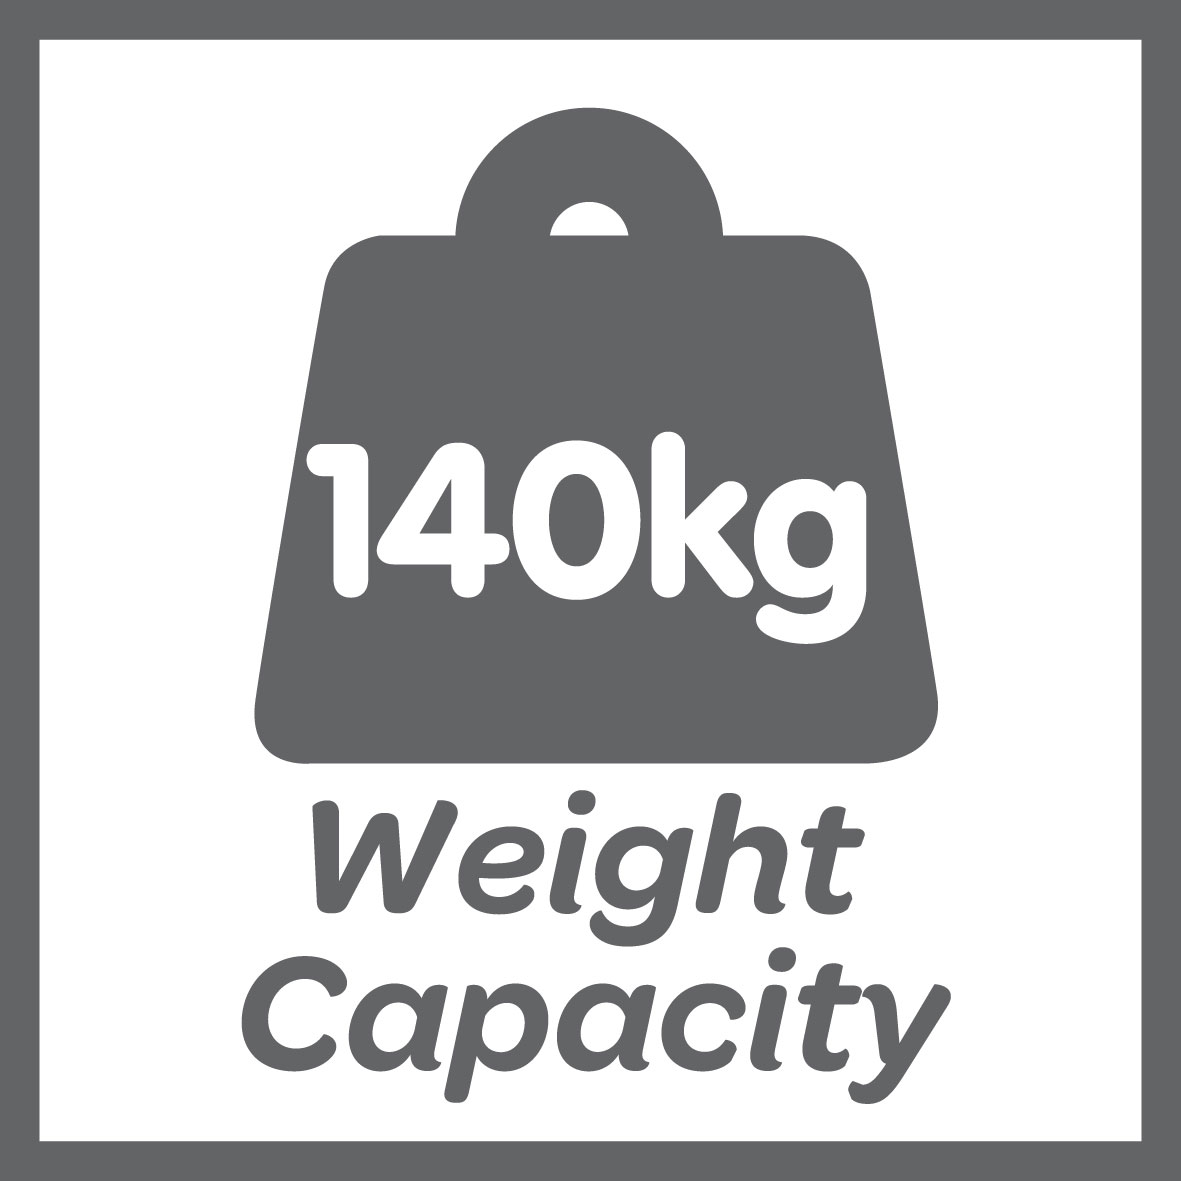 This product has a 140kg weight limit